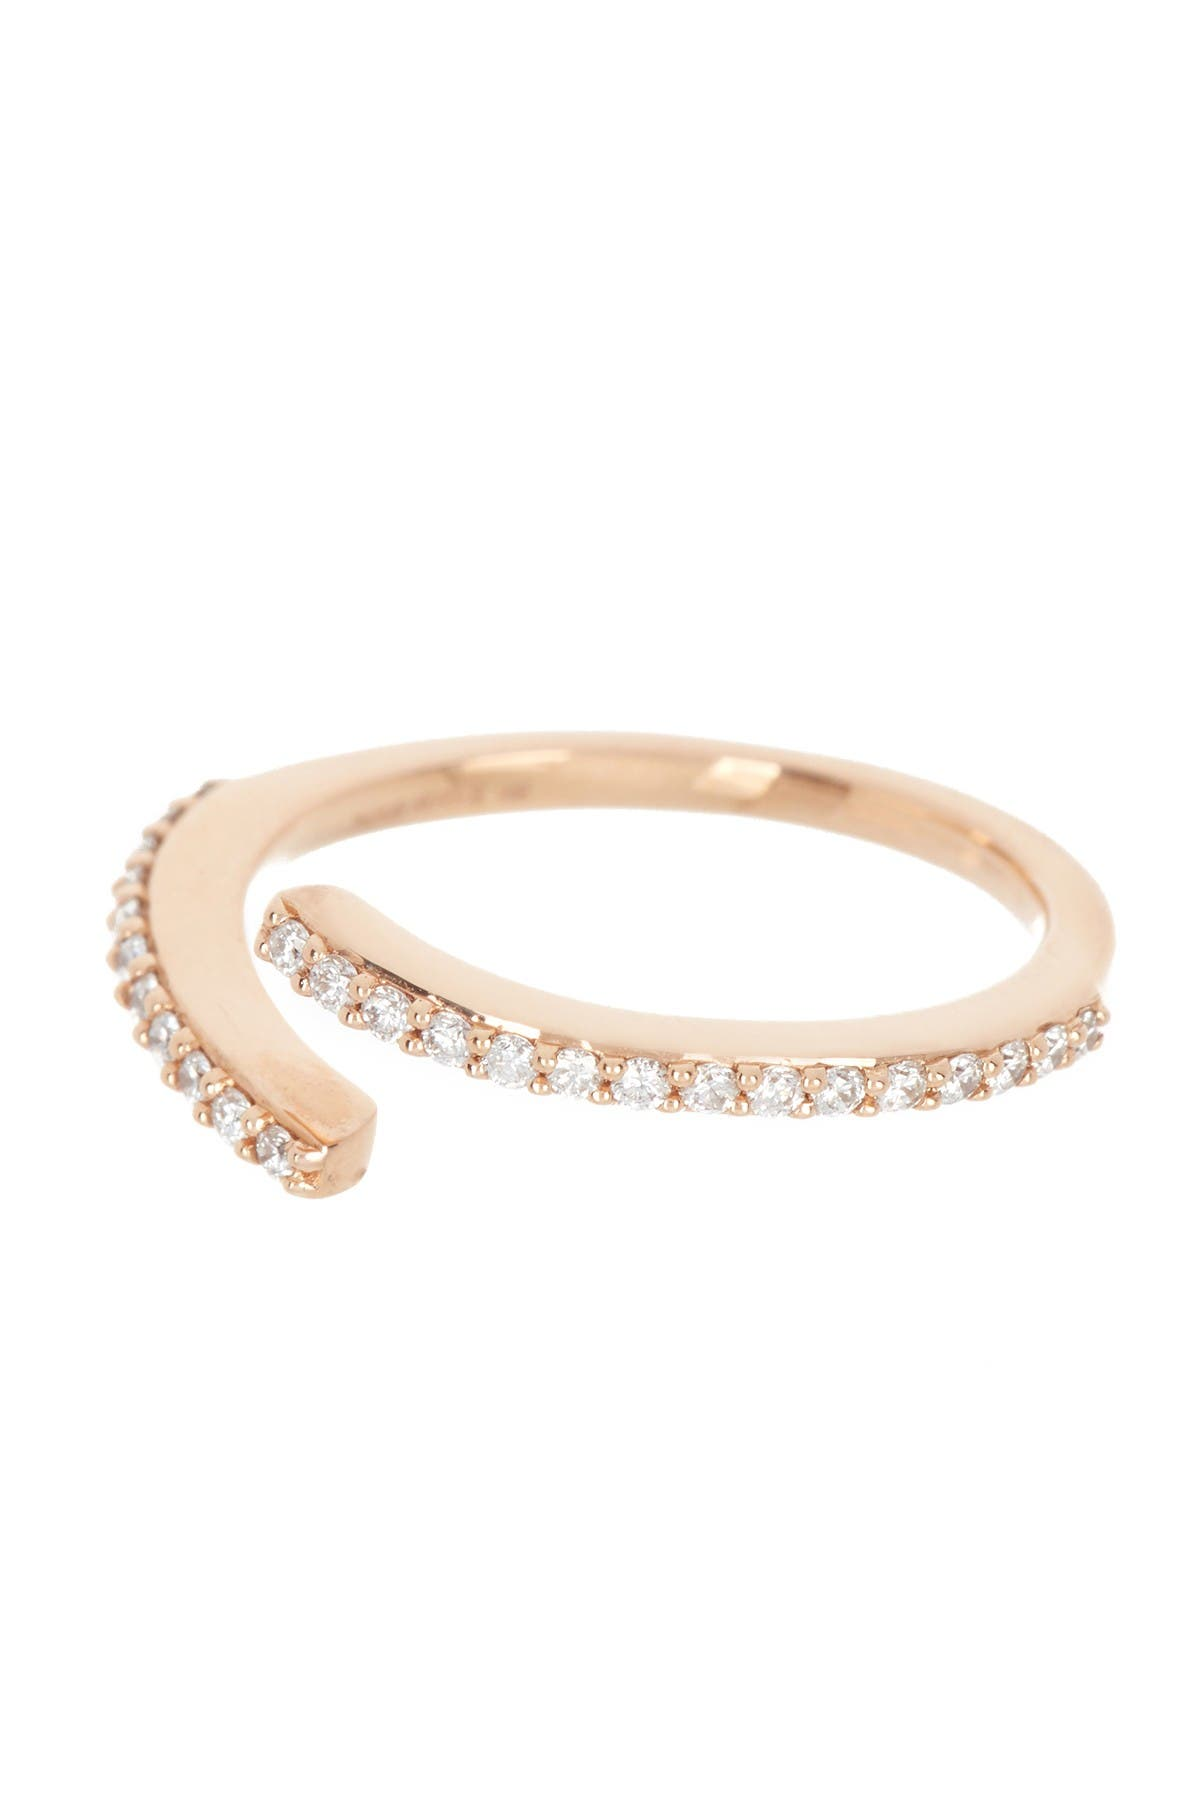 Image of Paige Novick 18K Rose Gold Converge Pave Wrap Ring - Size 7